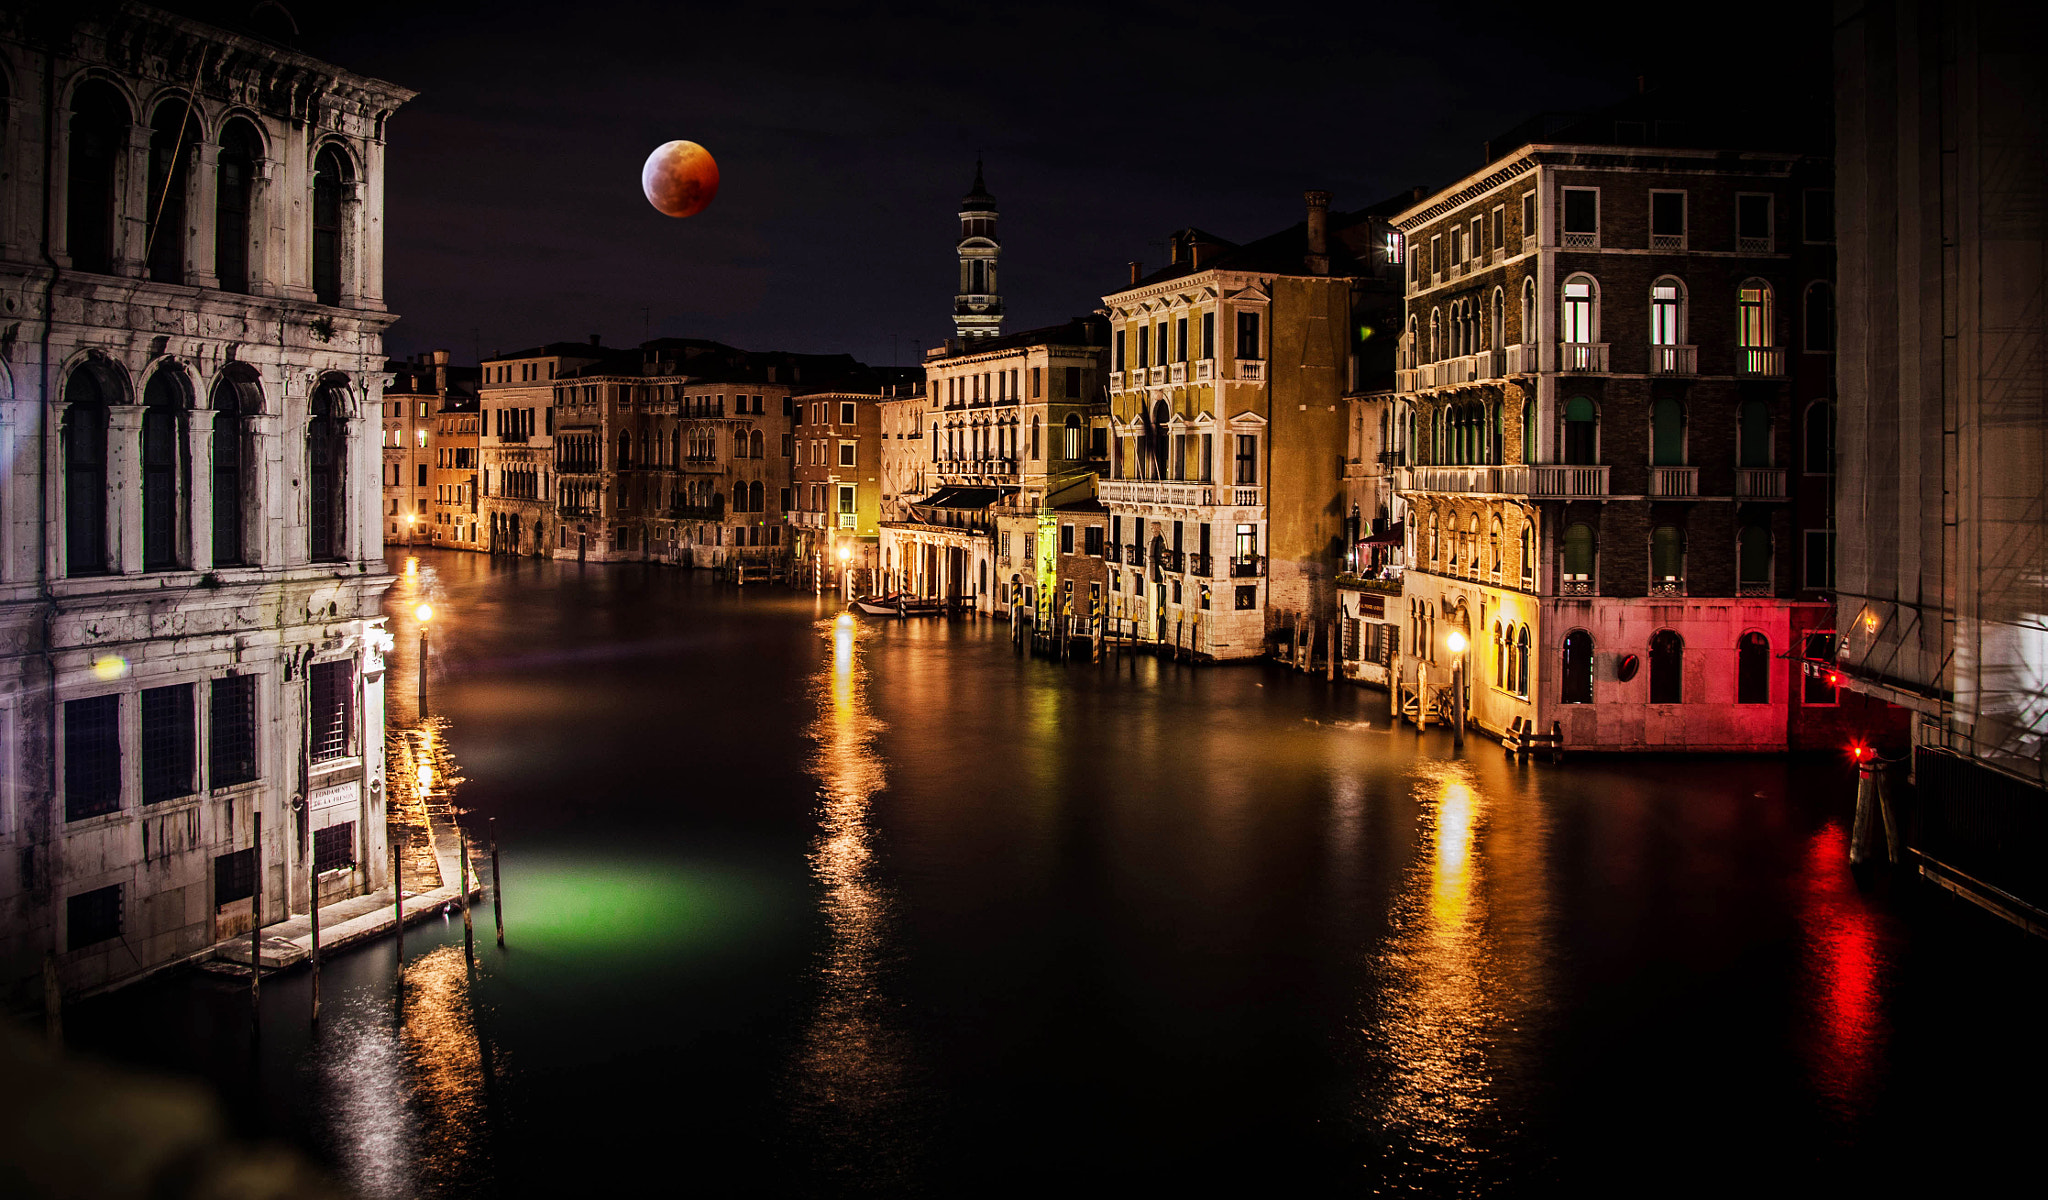 Photograph Moon Time on Venice by Efemir Art   on 500px